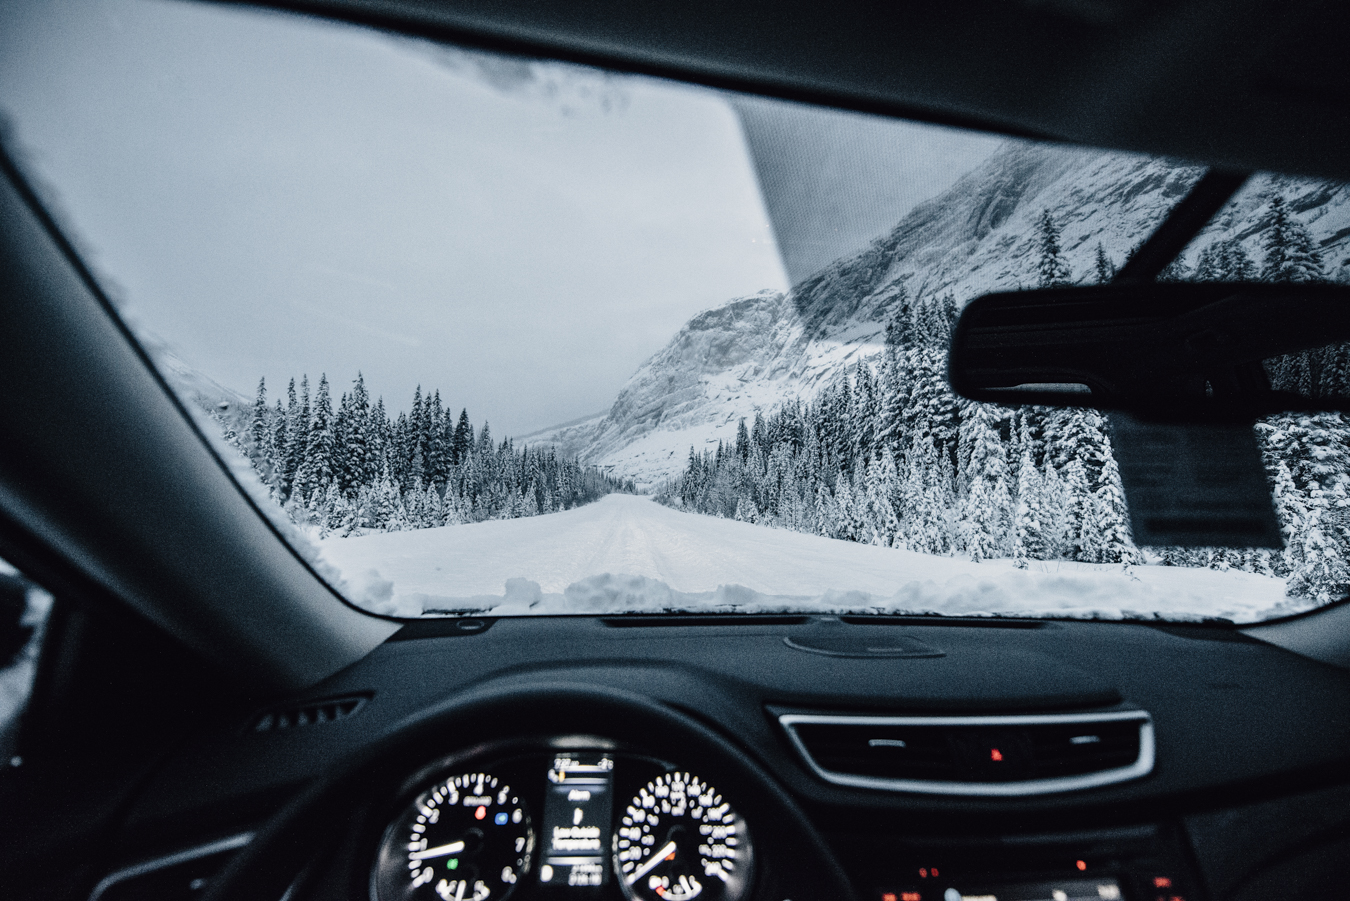 icefields-parkway-christian-frumolt-fotografie_web_small-20